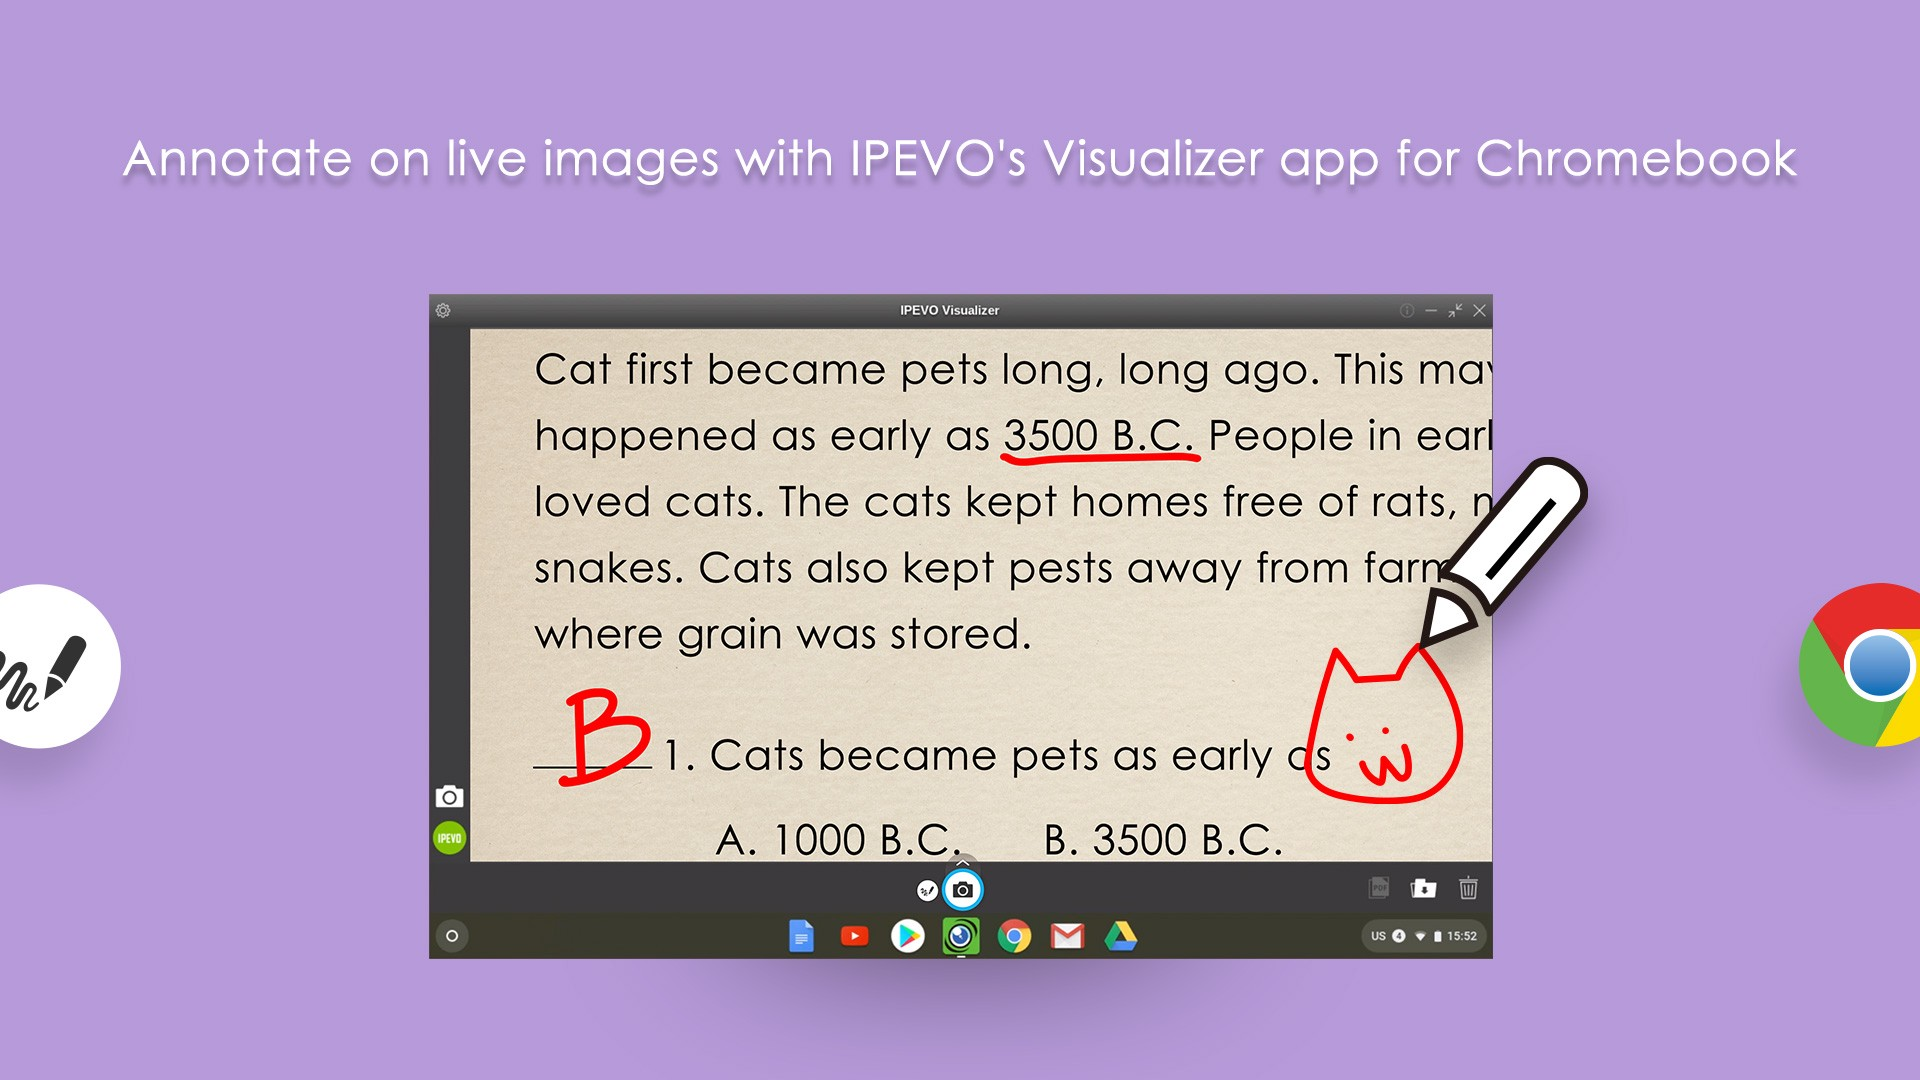 IPEVO Visualizer for Chromebook—Annotate on live images